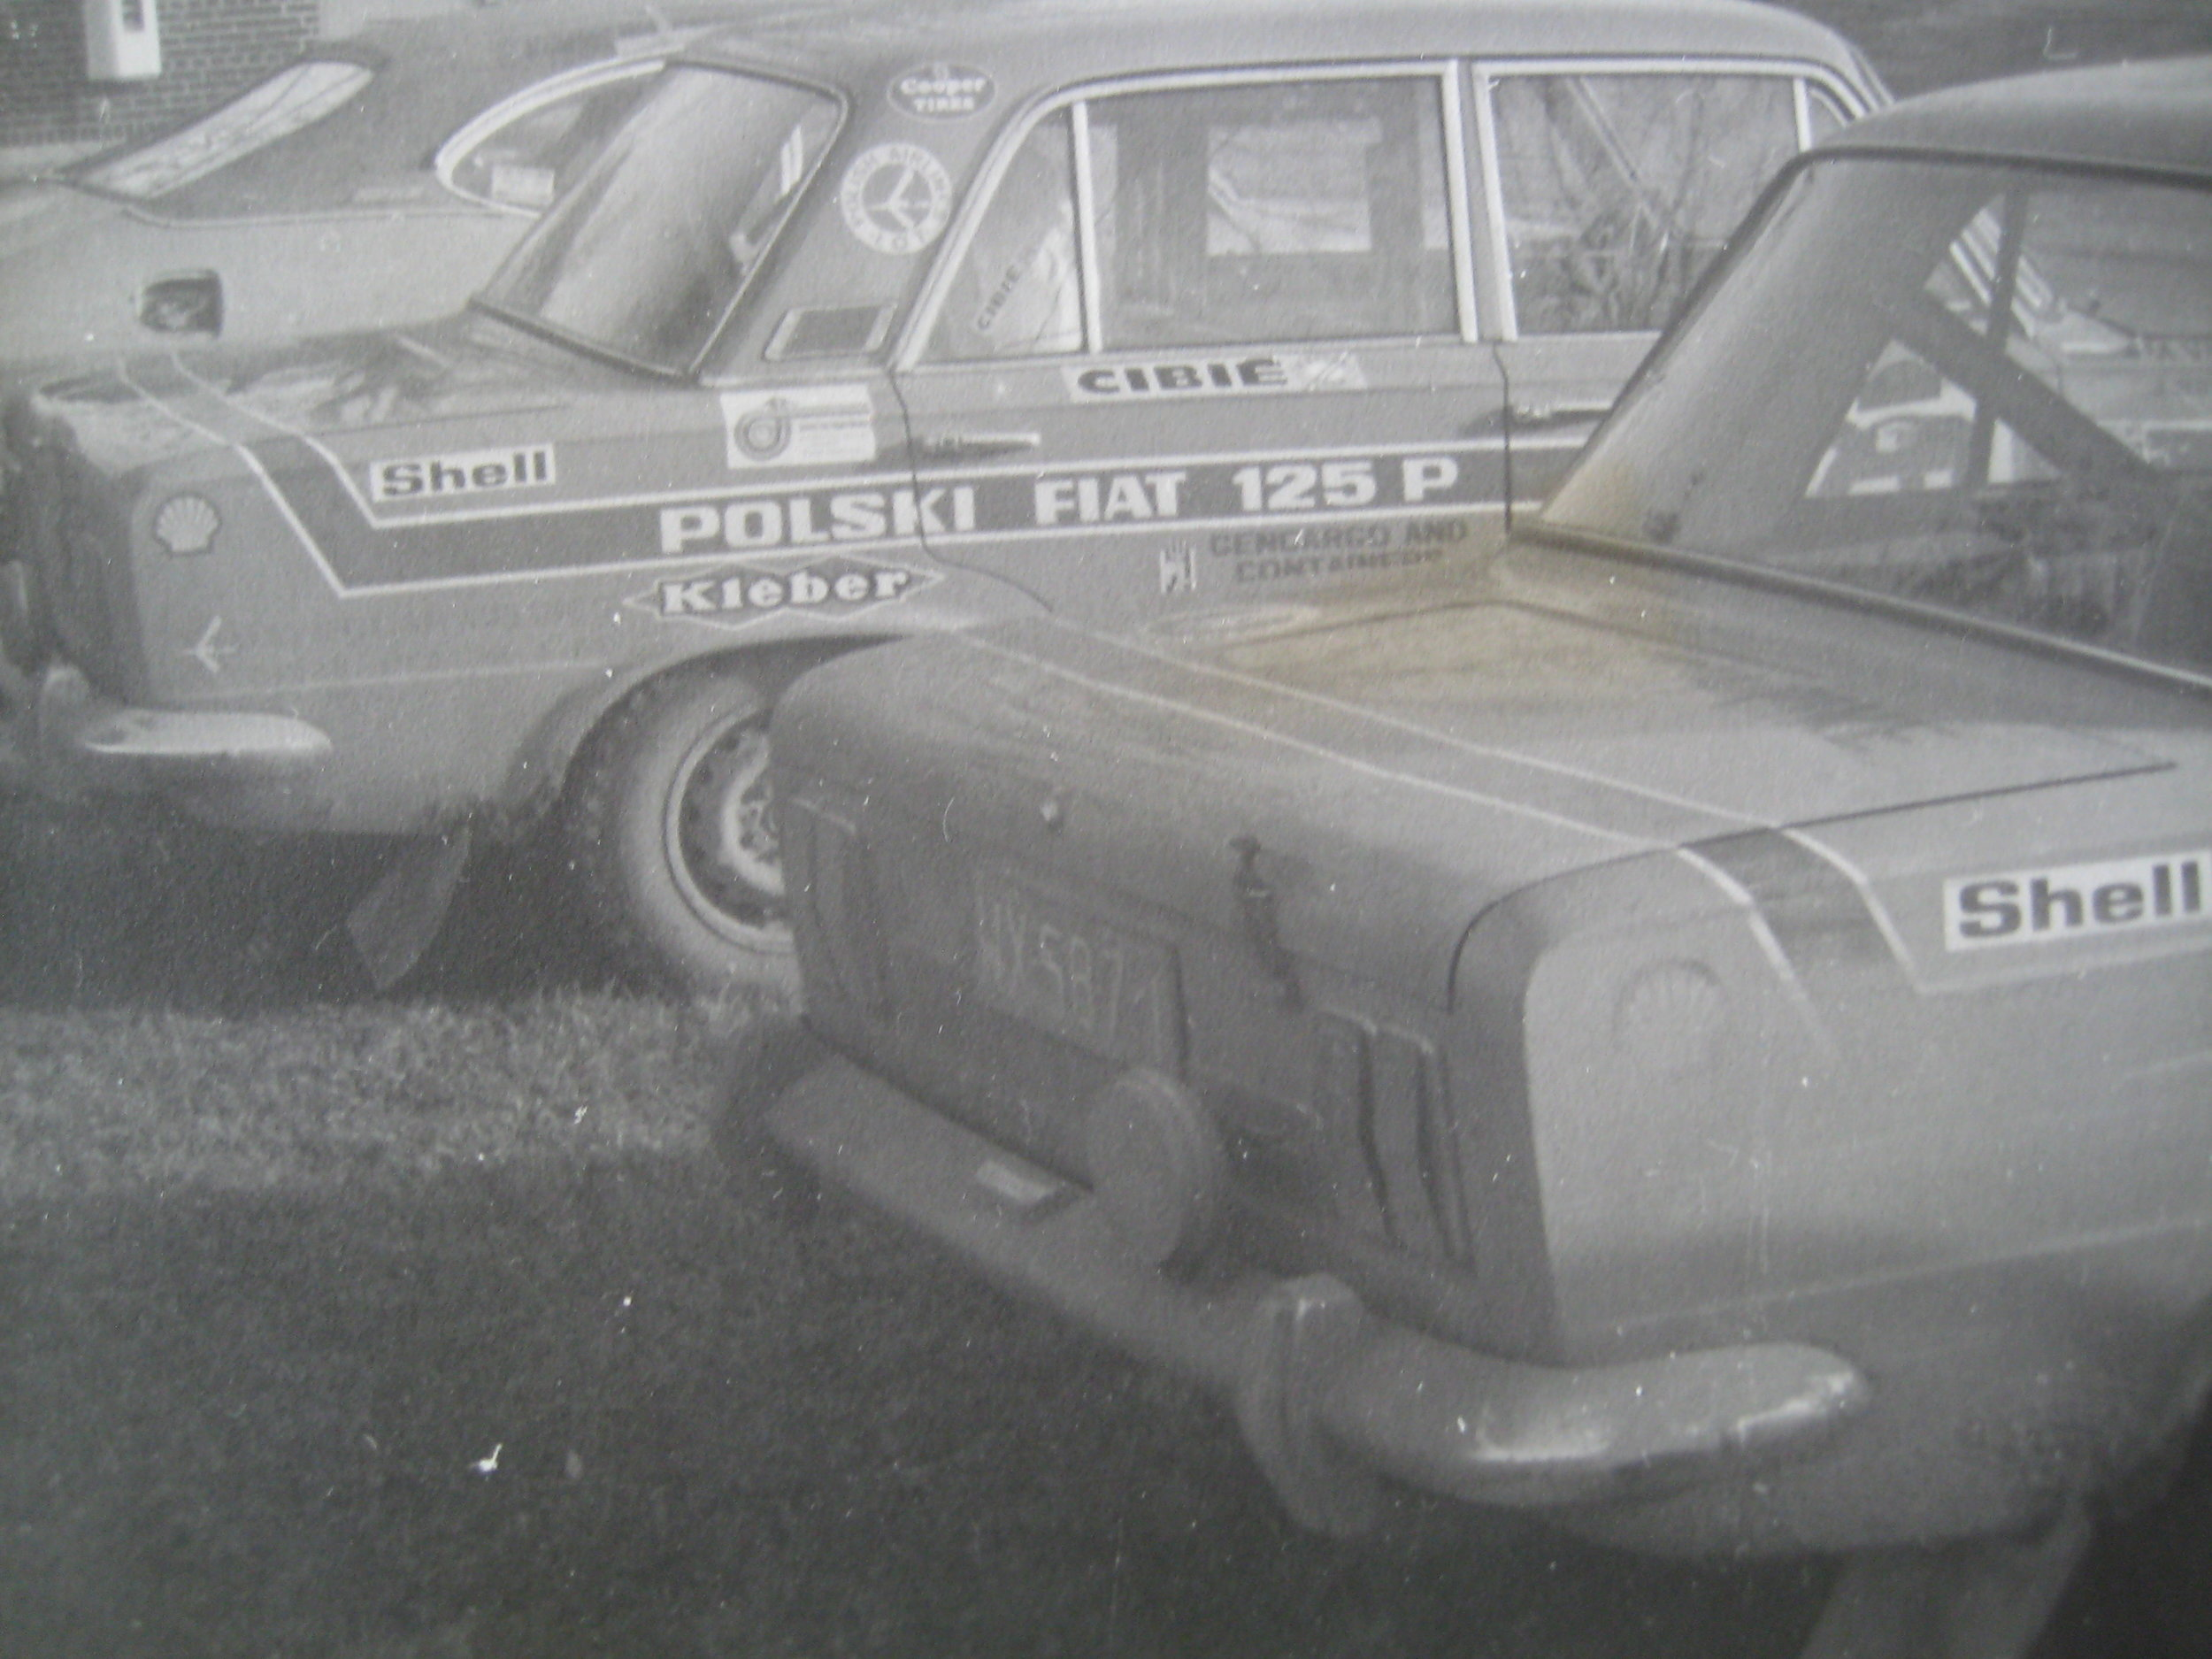 Inexplicably, Polski Fiat was the only real factory entry present.